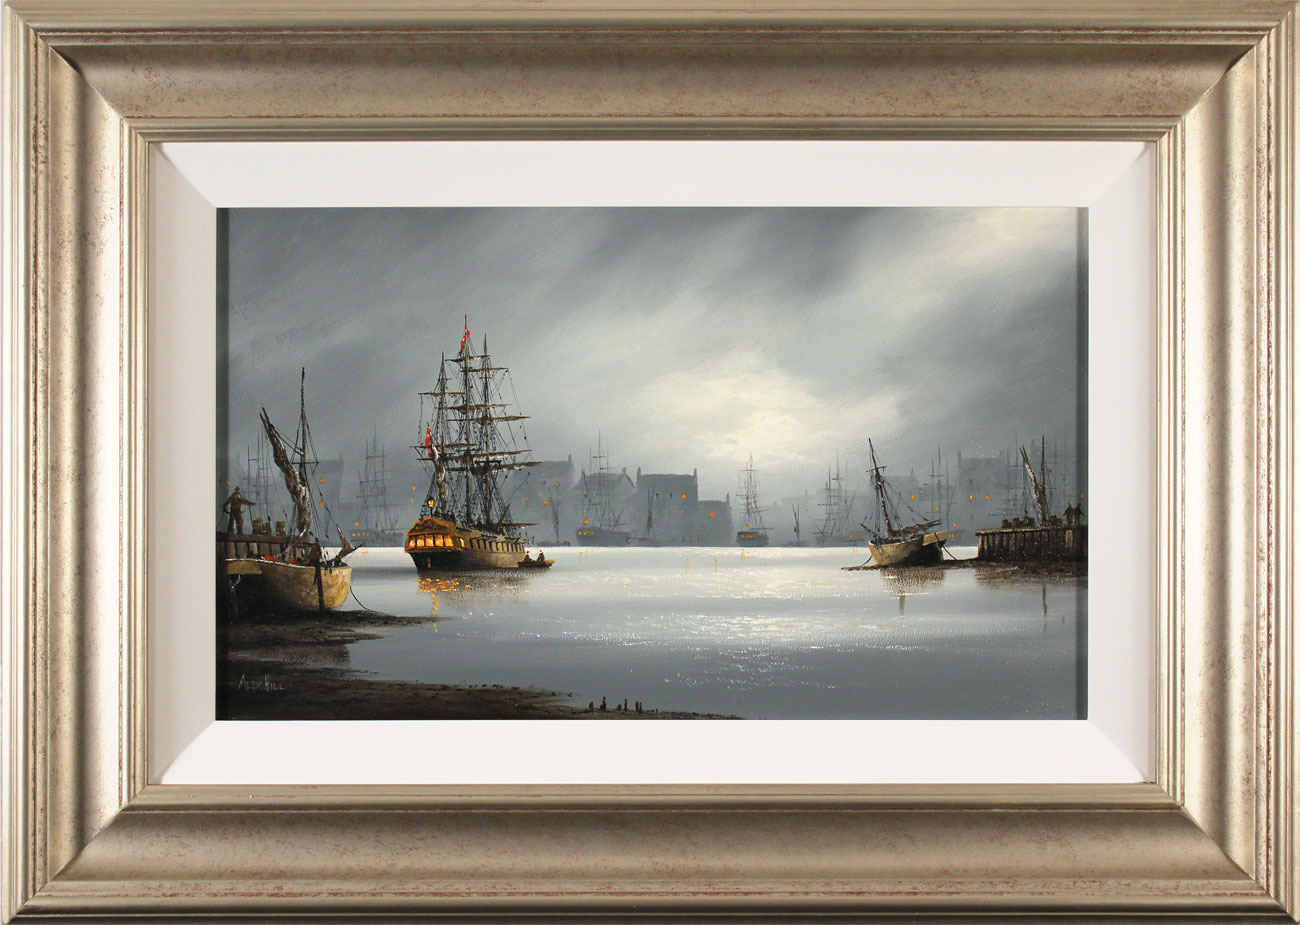 Alex Hill, Original oil painting on panel, Moonlight Harbour, click to enlarge